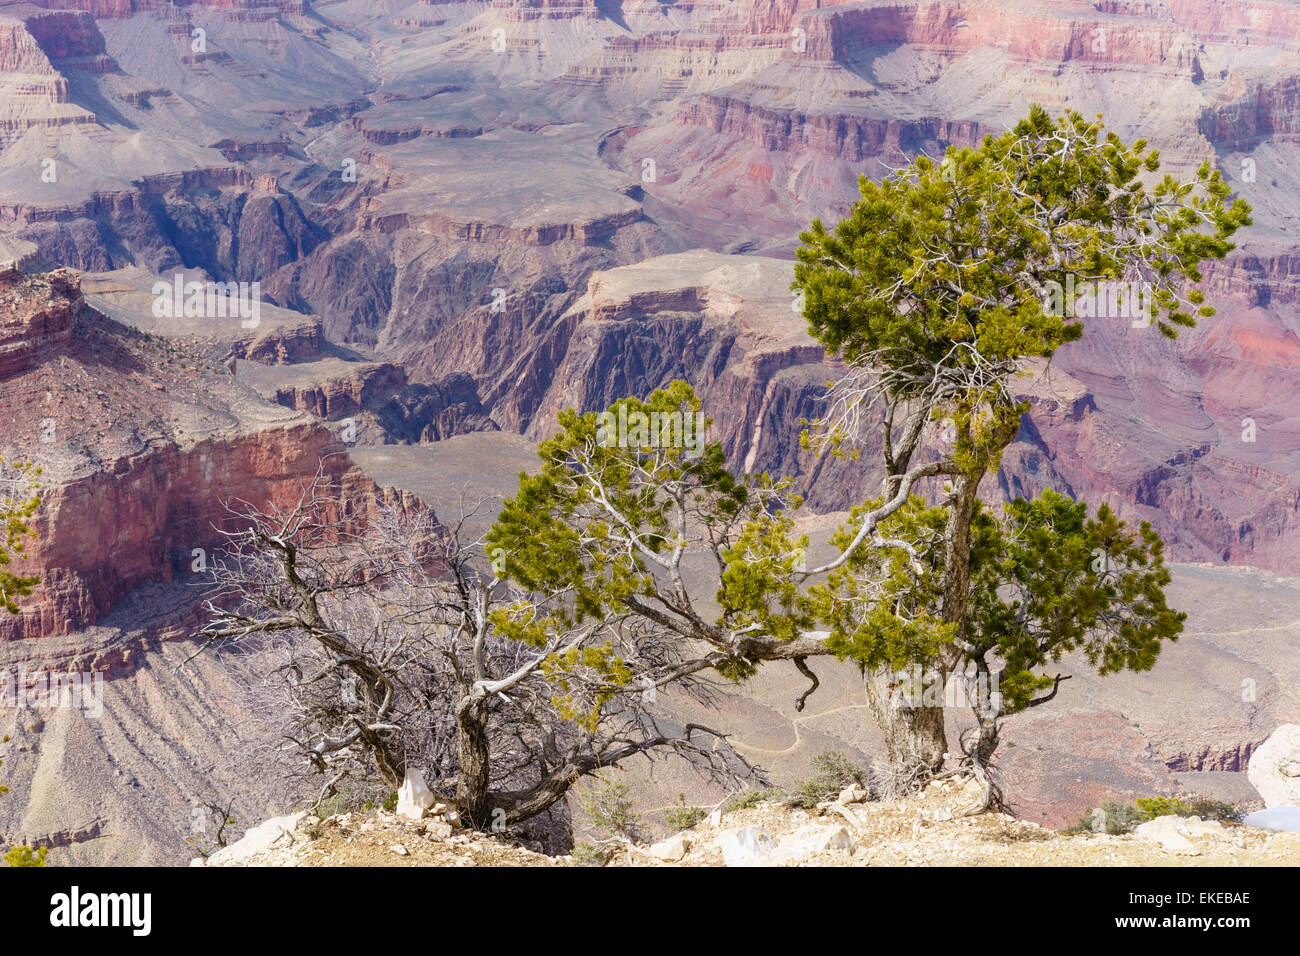 Green old arboreal survivor above ancient extreme terrain - Stock Image